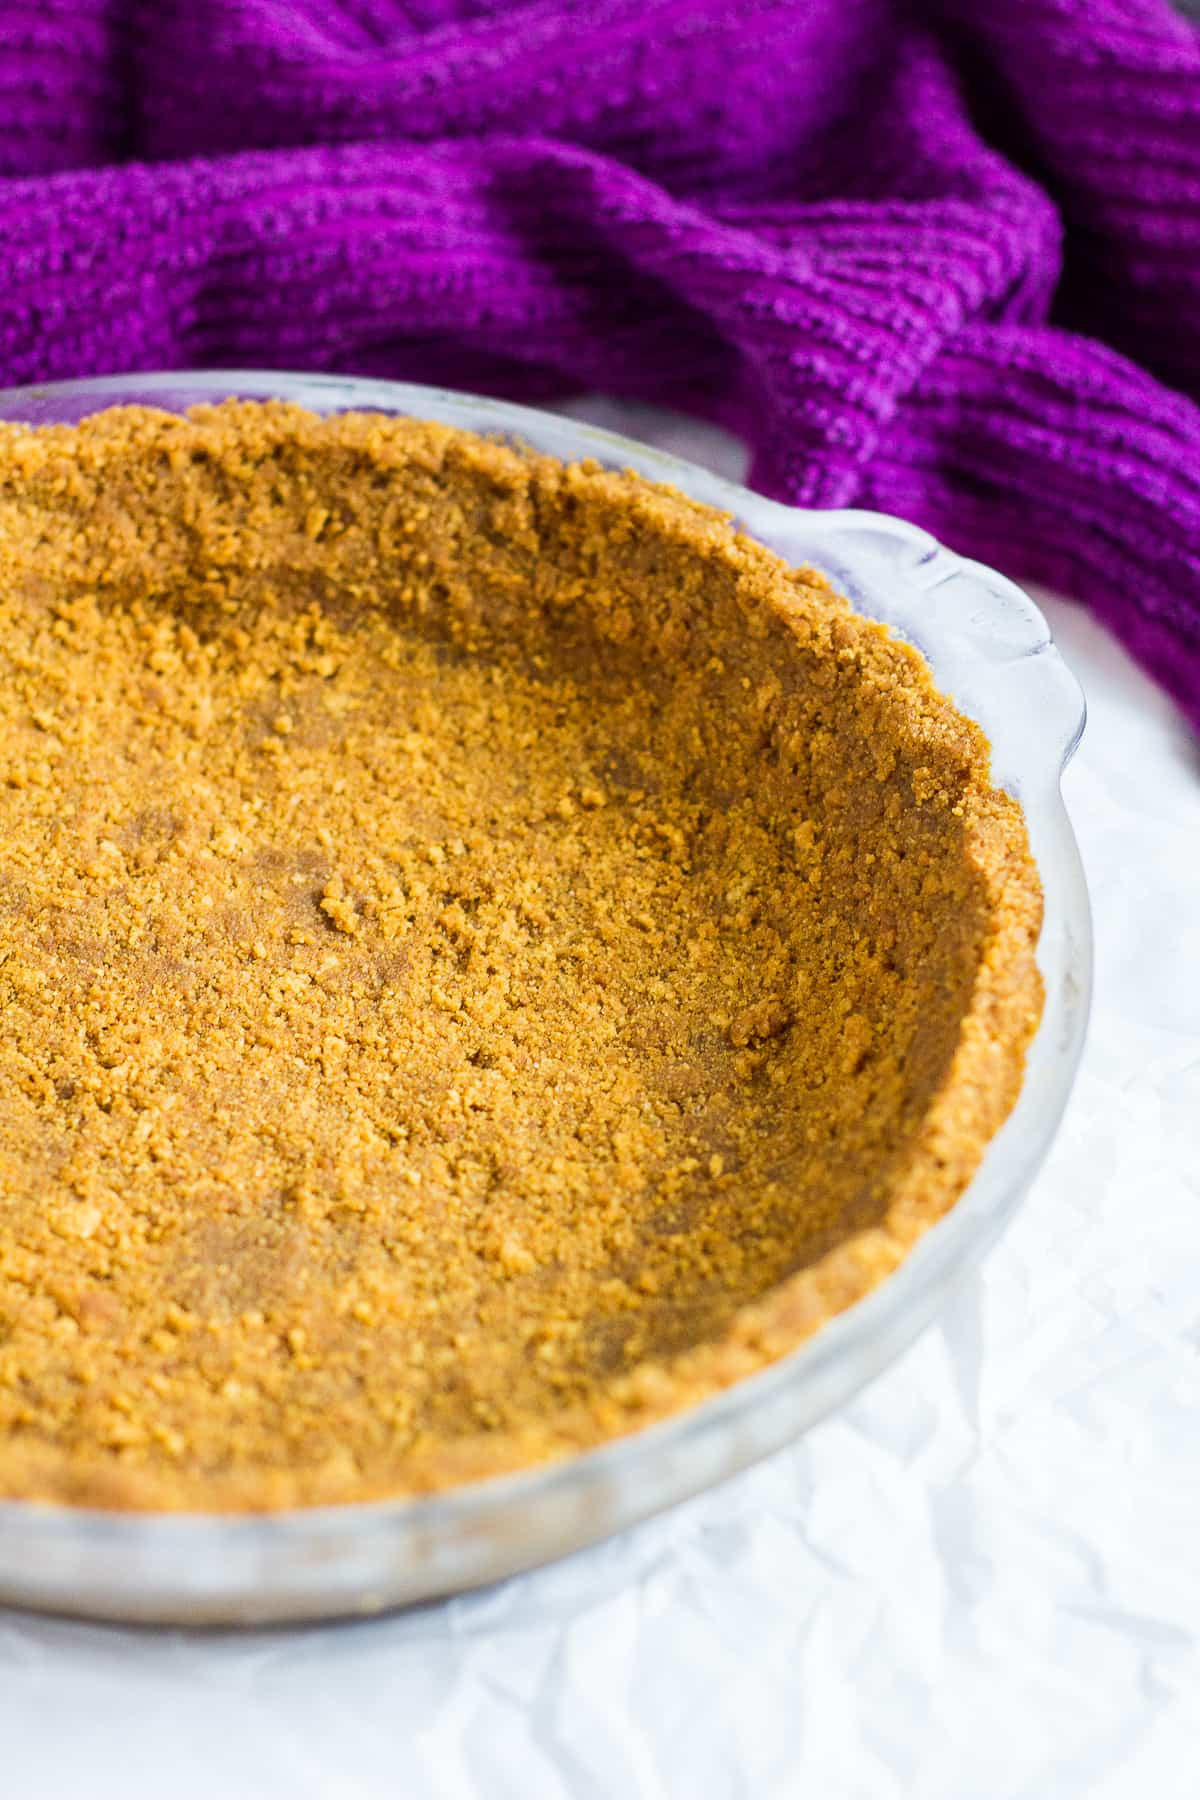 Ginger biscuit crust in a glass pie dish for no-bake key lime pie.